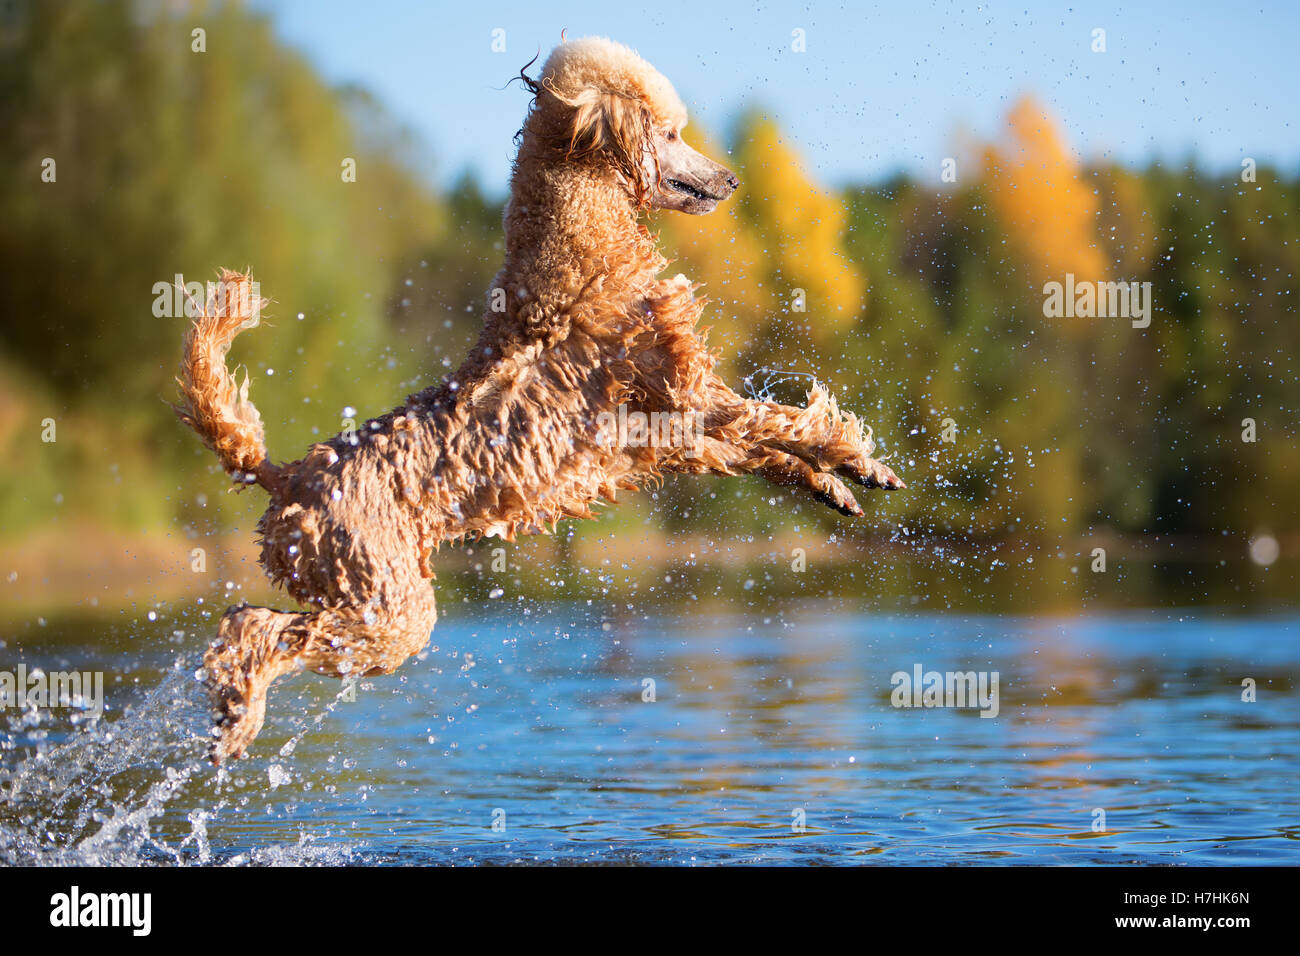 royal poodle is jumping in the water of a lake - Stock Image